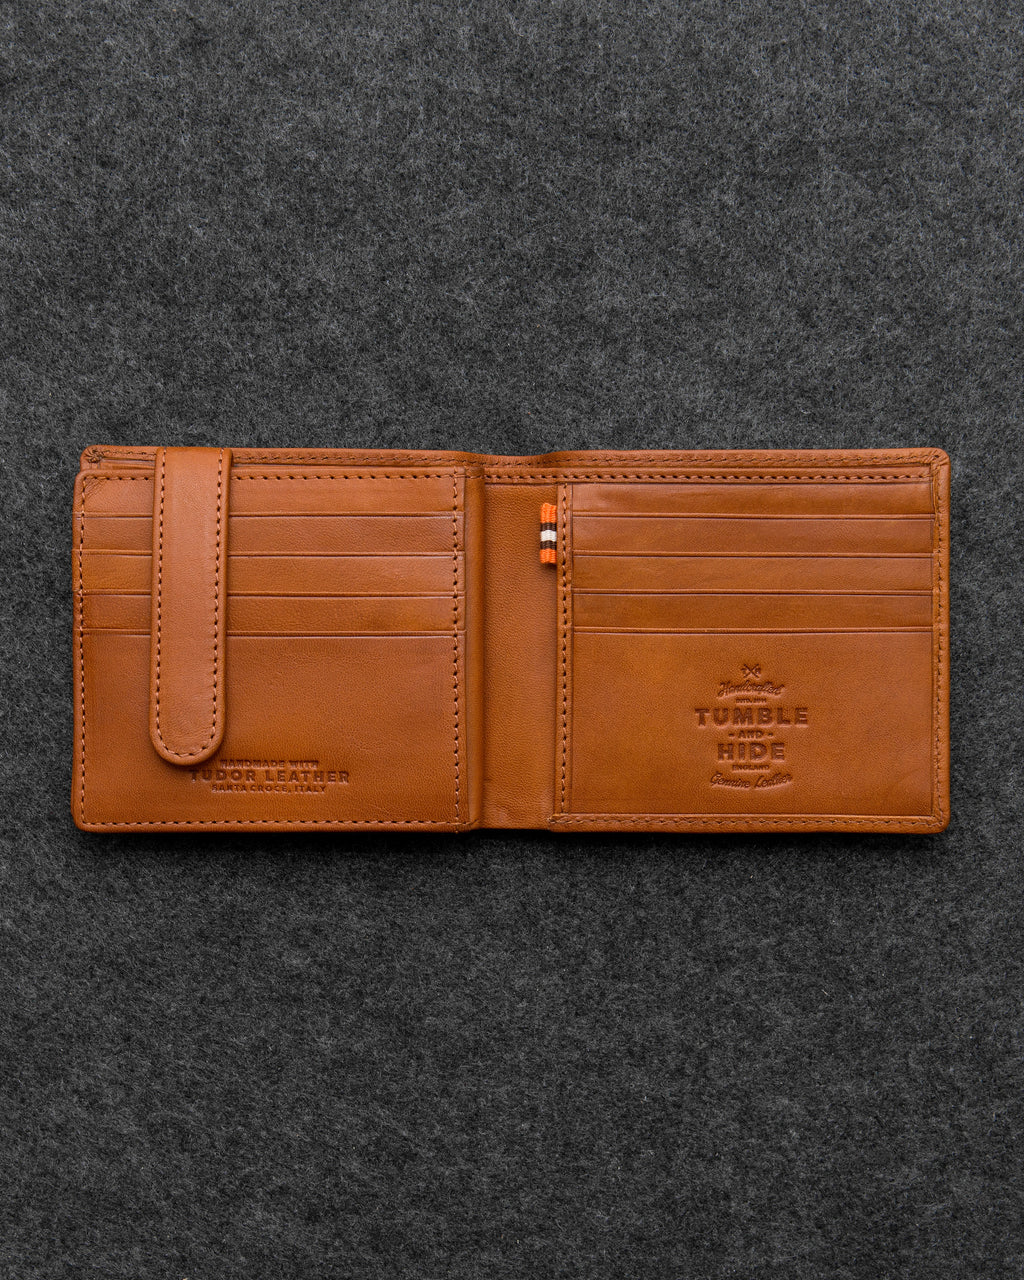 Tudor Leather Ultimate Card Wallet